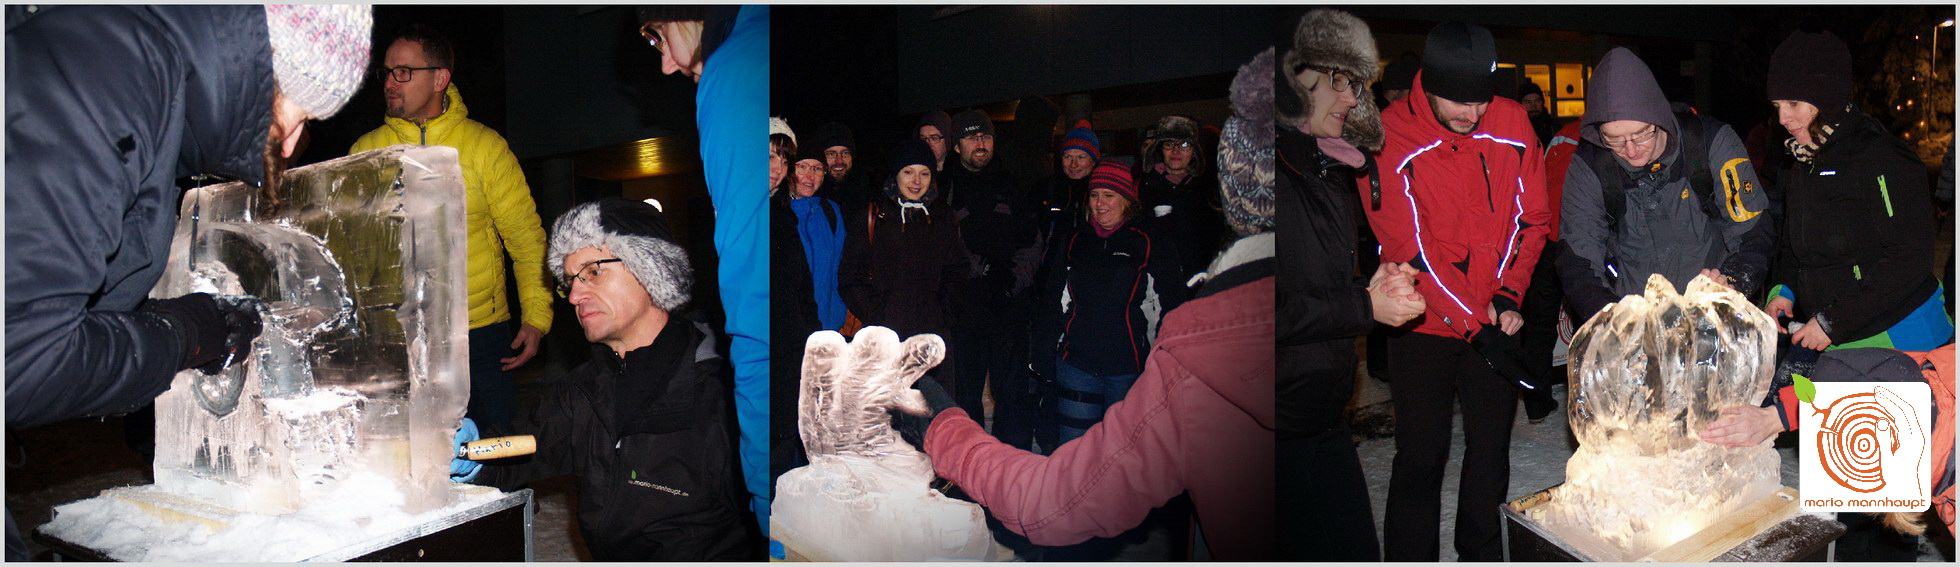 Ice carving -Teamevents by Mario Mannhaupt